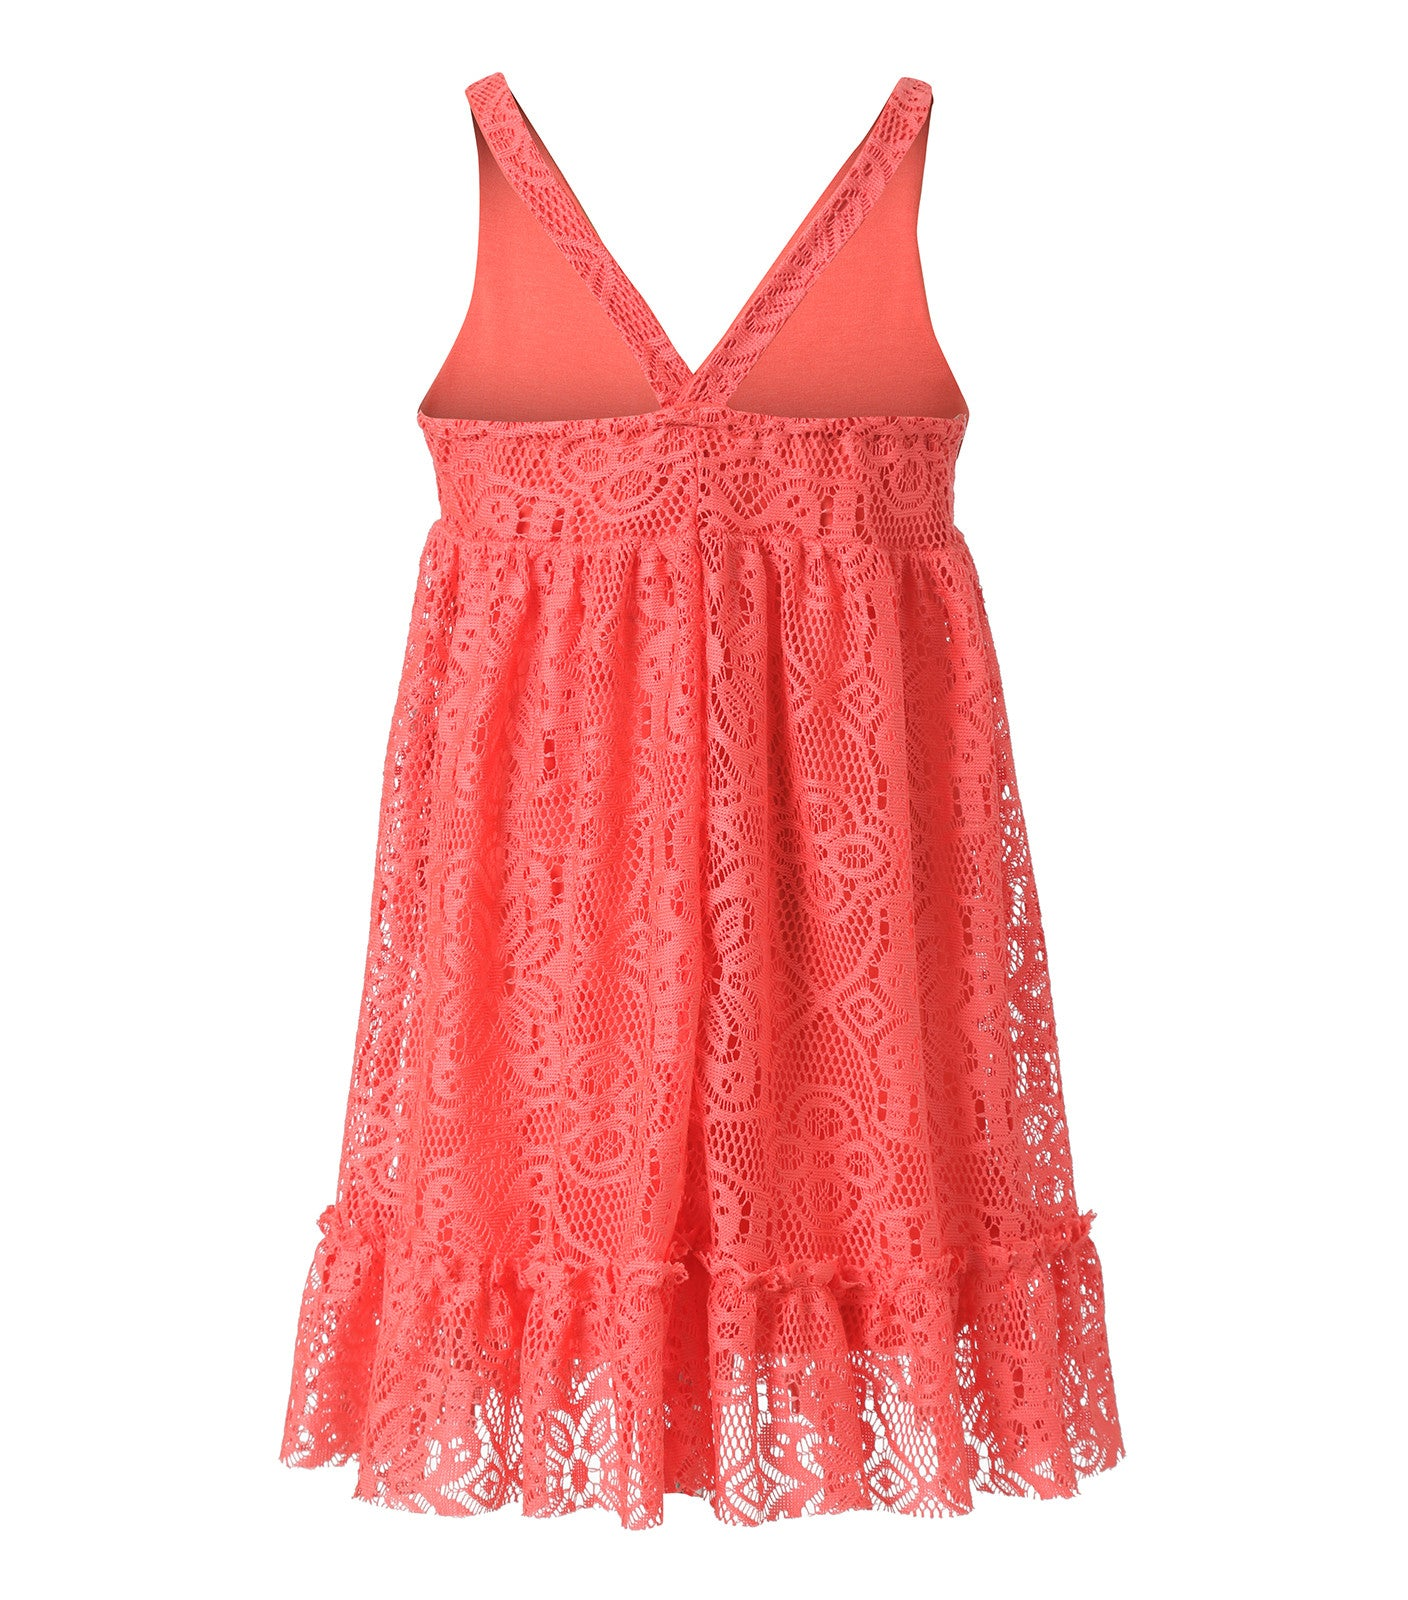 Girl Lace Summer Dress in Coral Colour